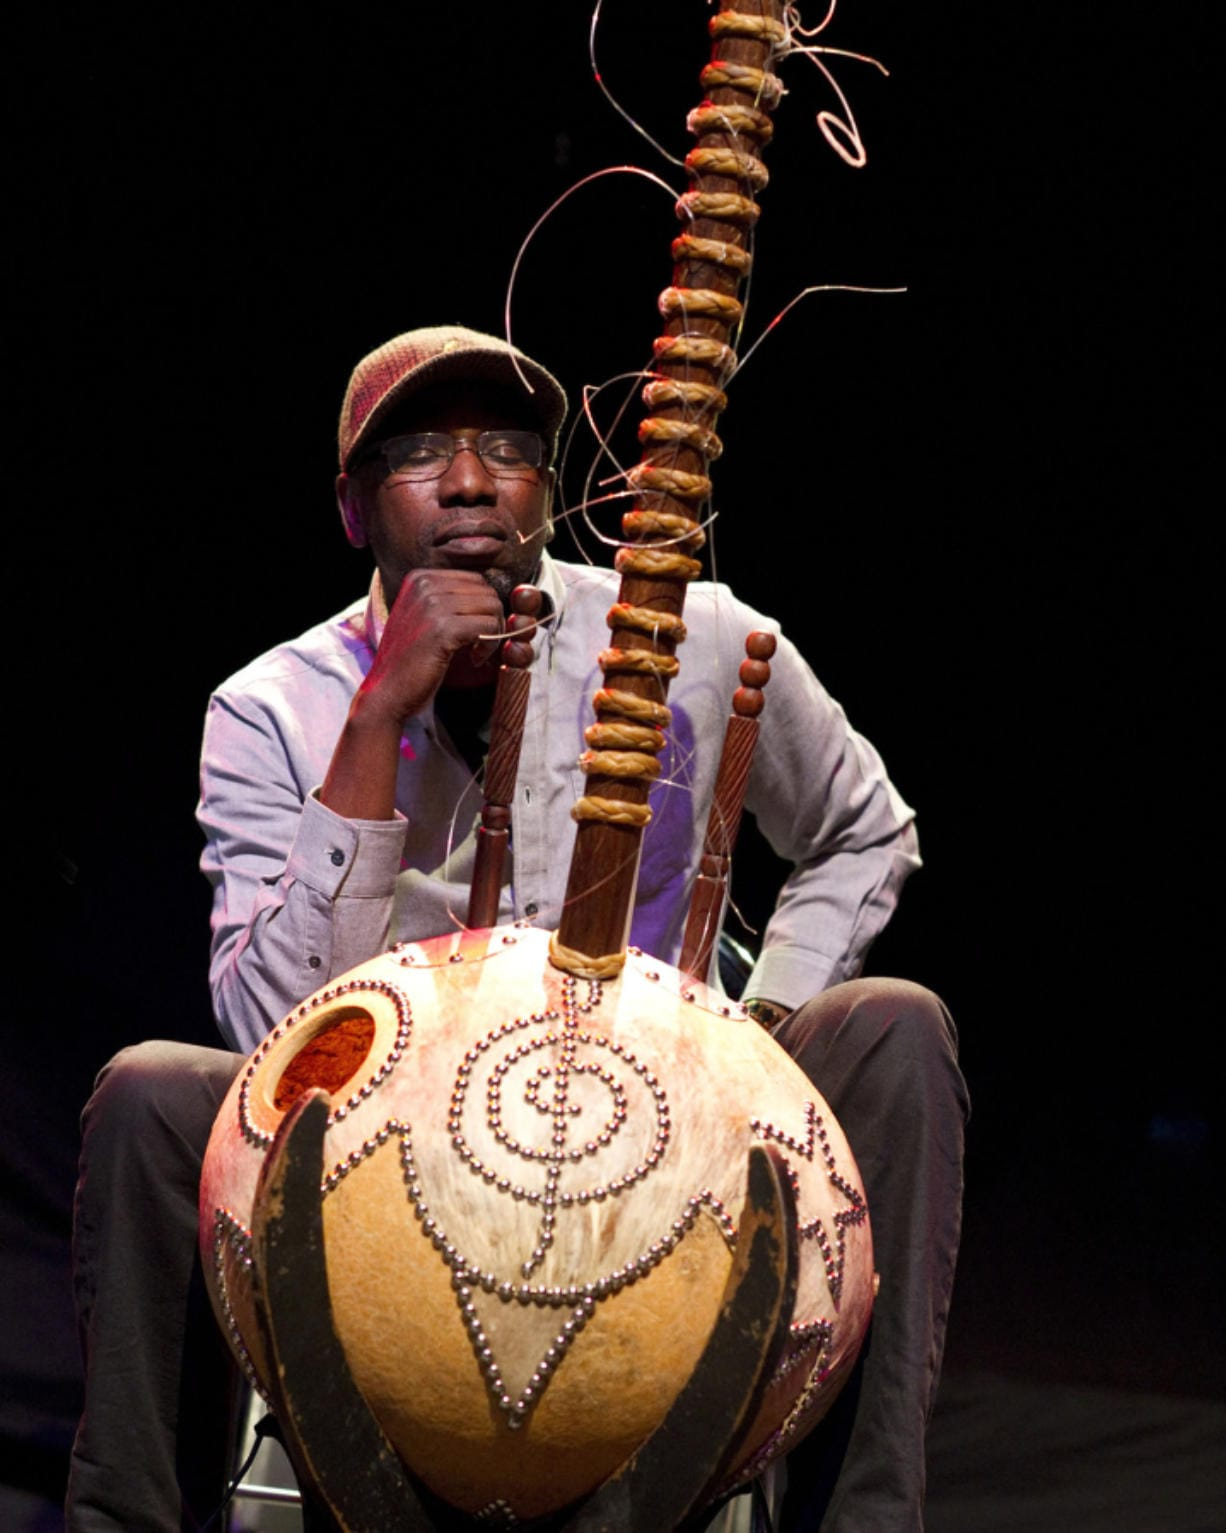 Ballake Sissoko performs in France on April 20, 2013. (Guillemin/DAPR/ZUMAPRESS.com)